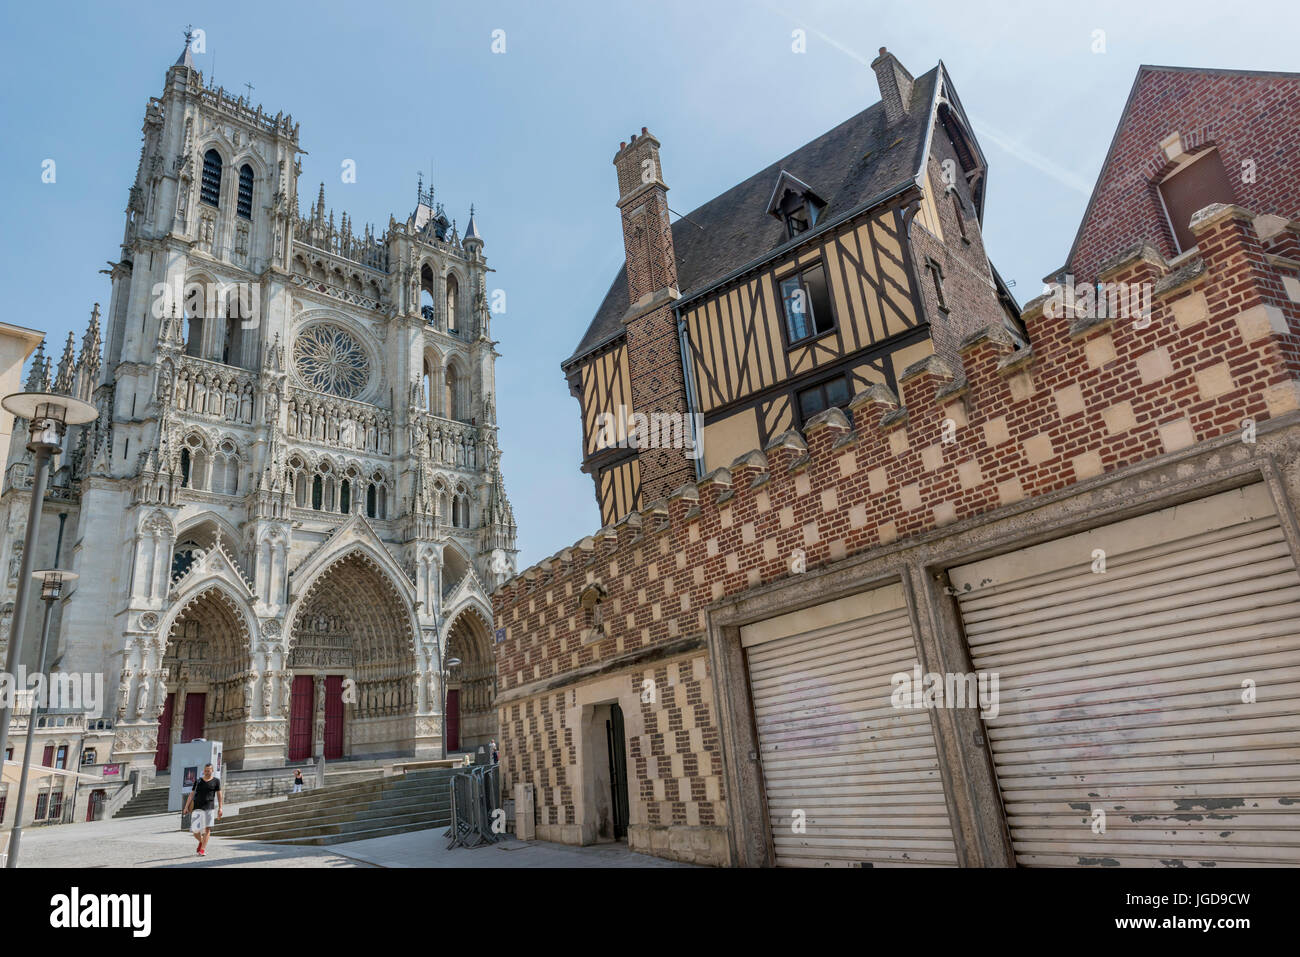 Amiens Cathedral, Amiens - Stock Image